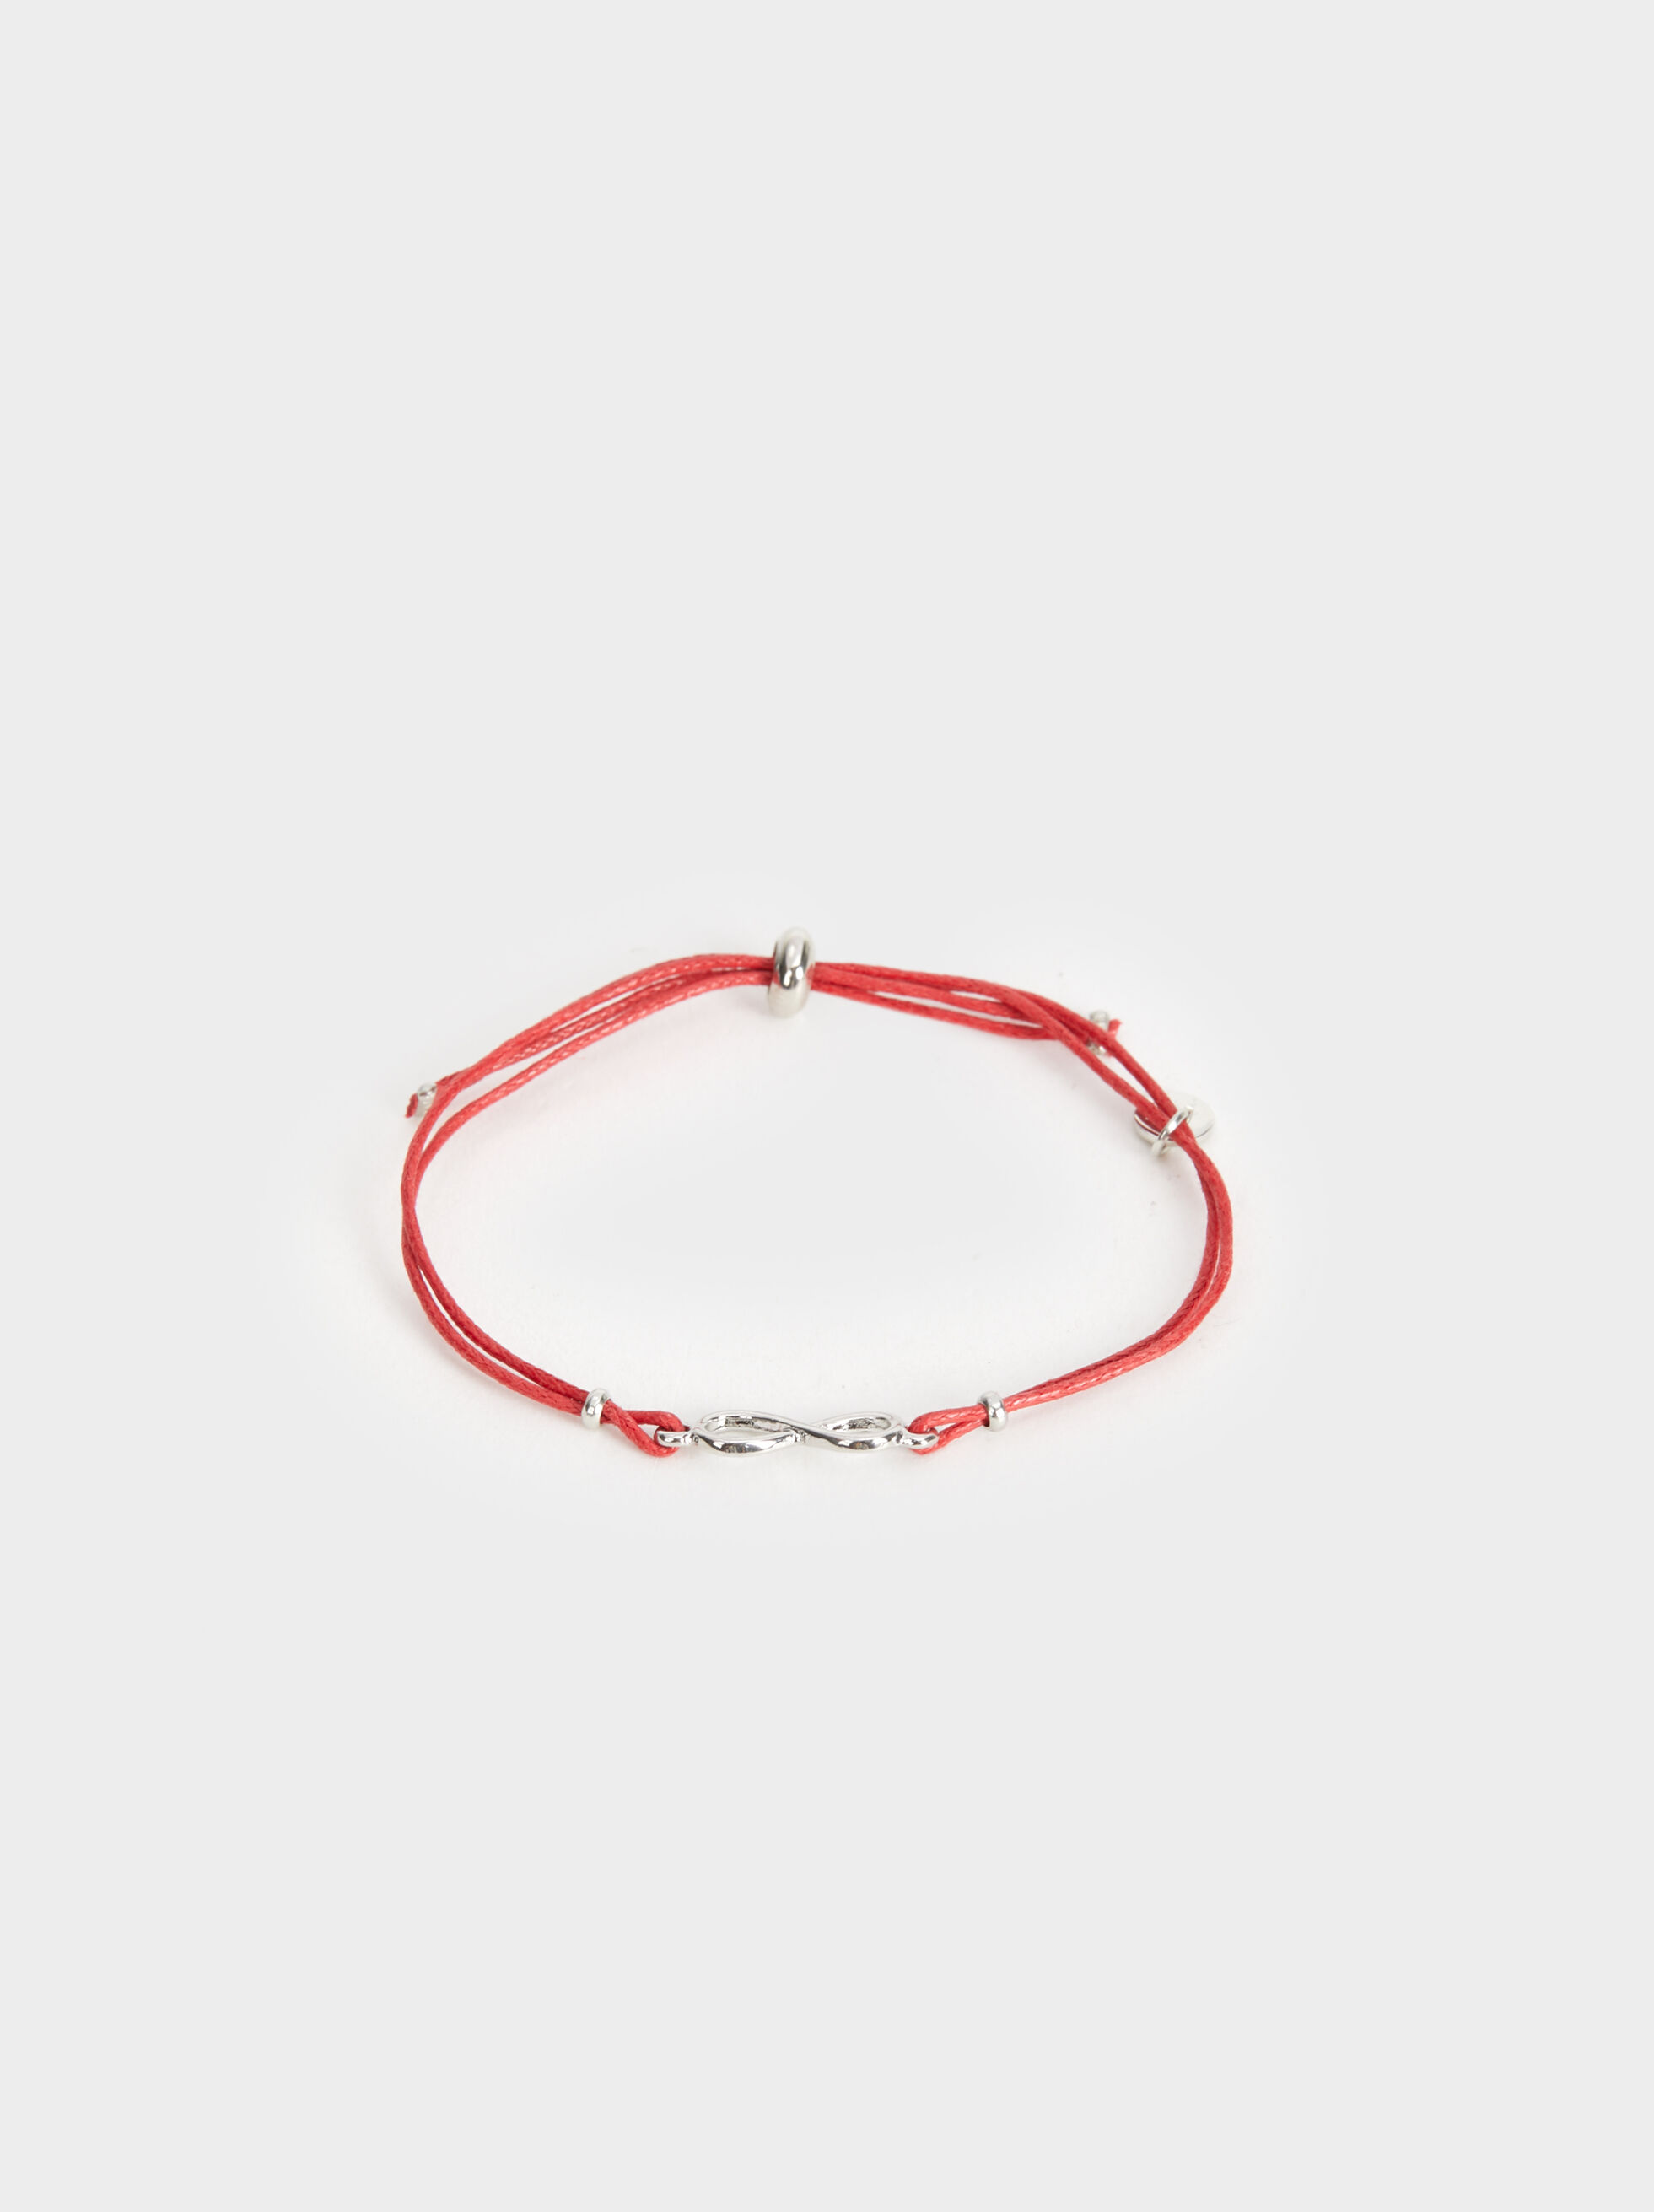 Adjustable Bracelet With Infinity Sign, , hi-res